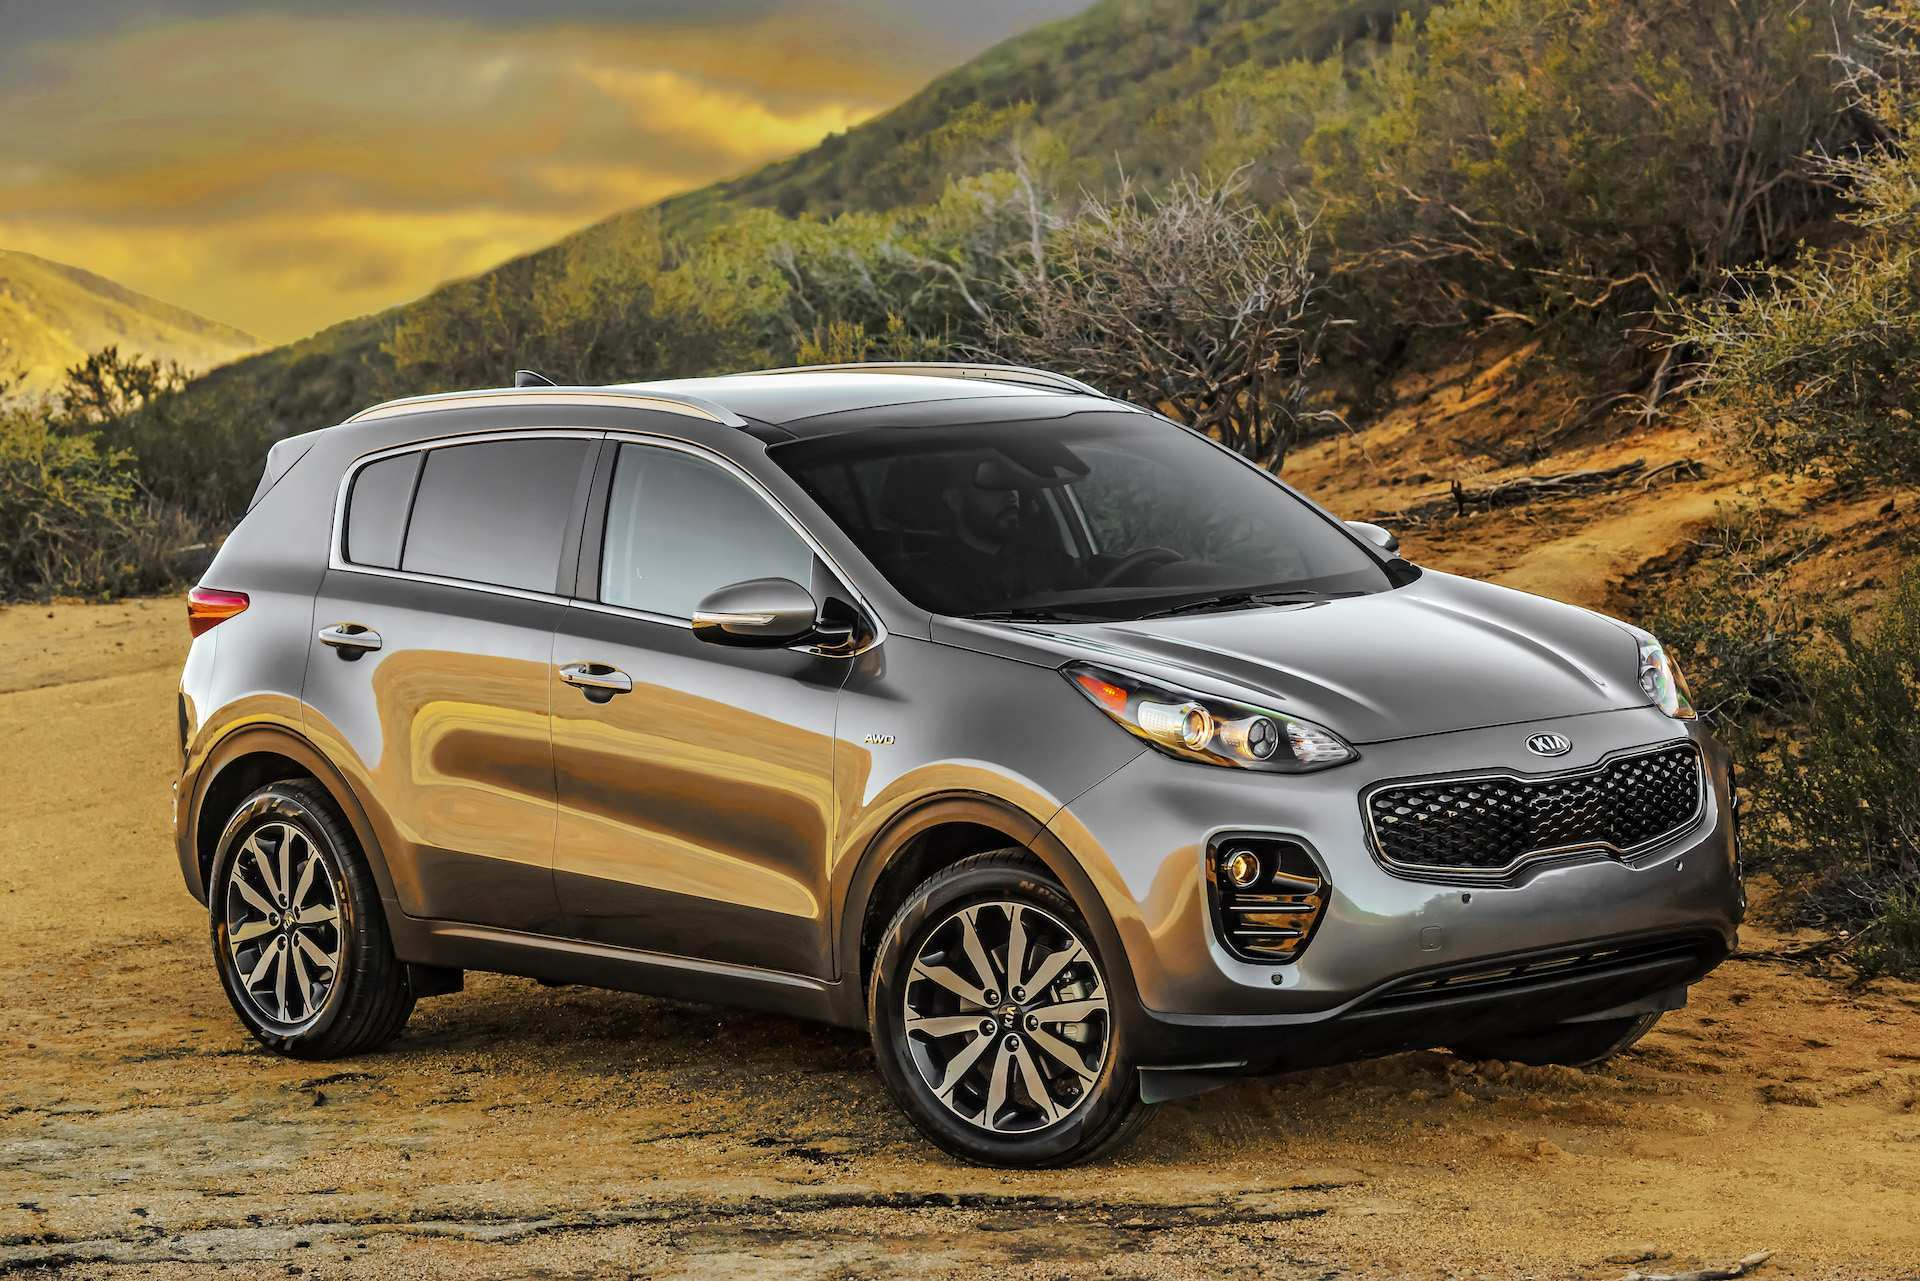 95 A 2019 Kia Sorento Review Release Date and Concept